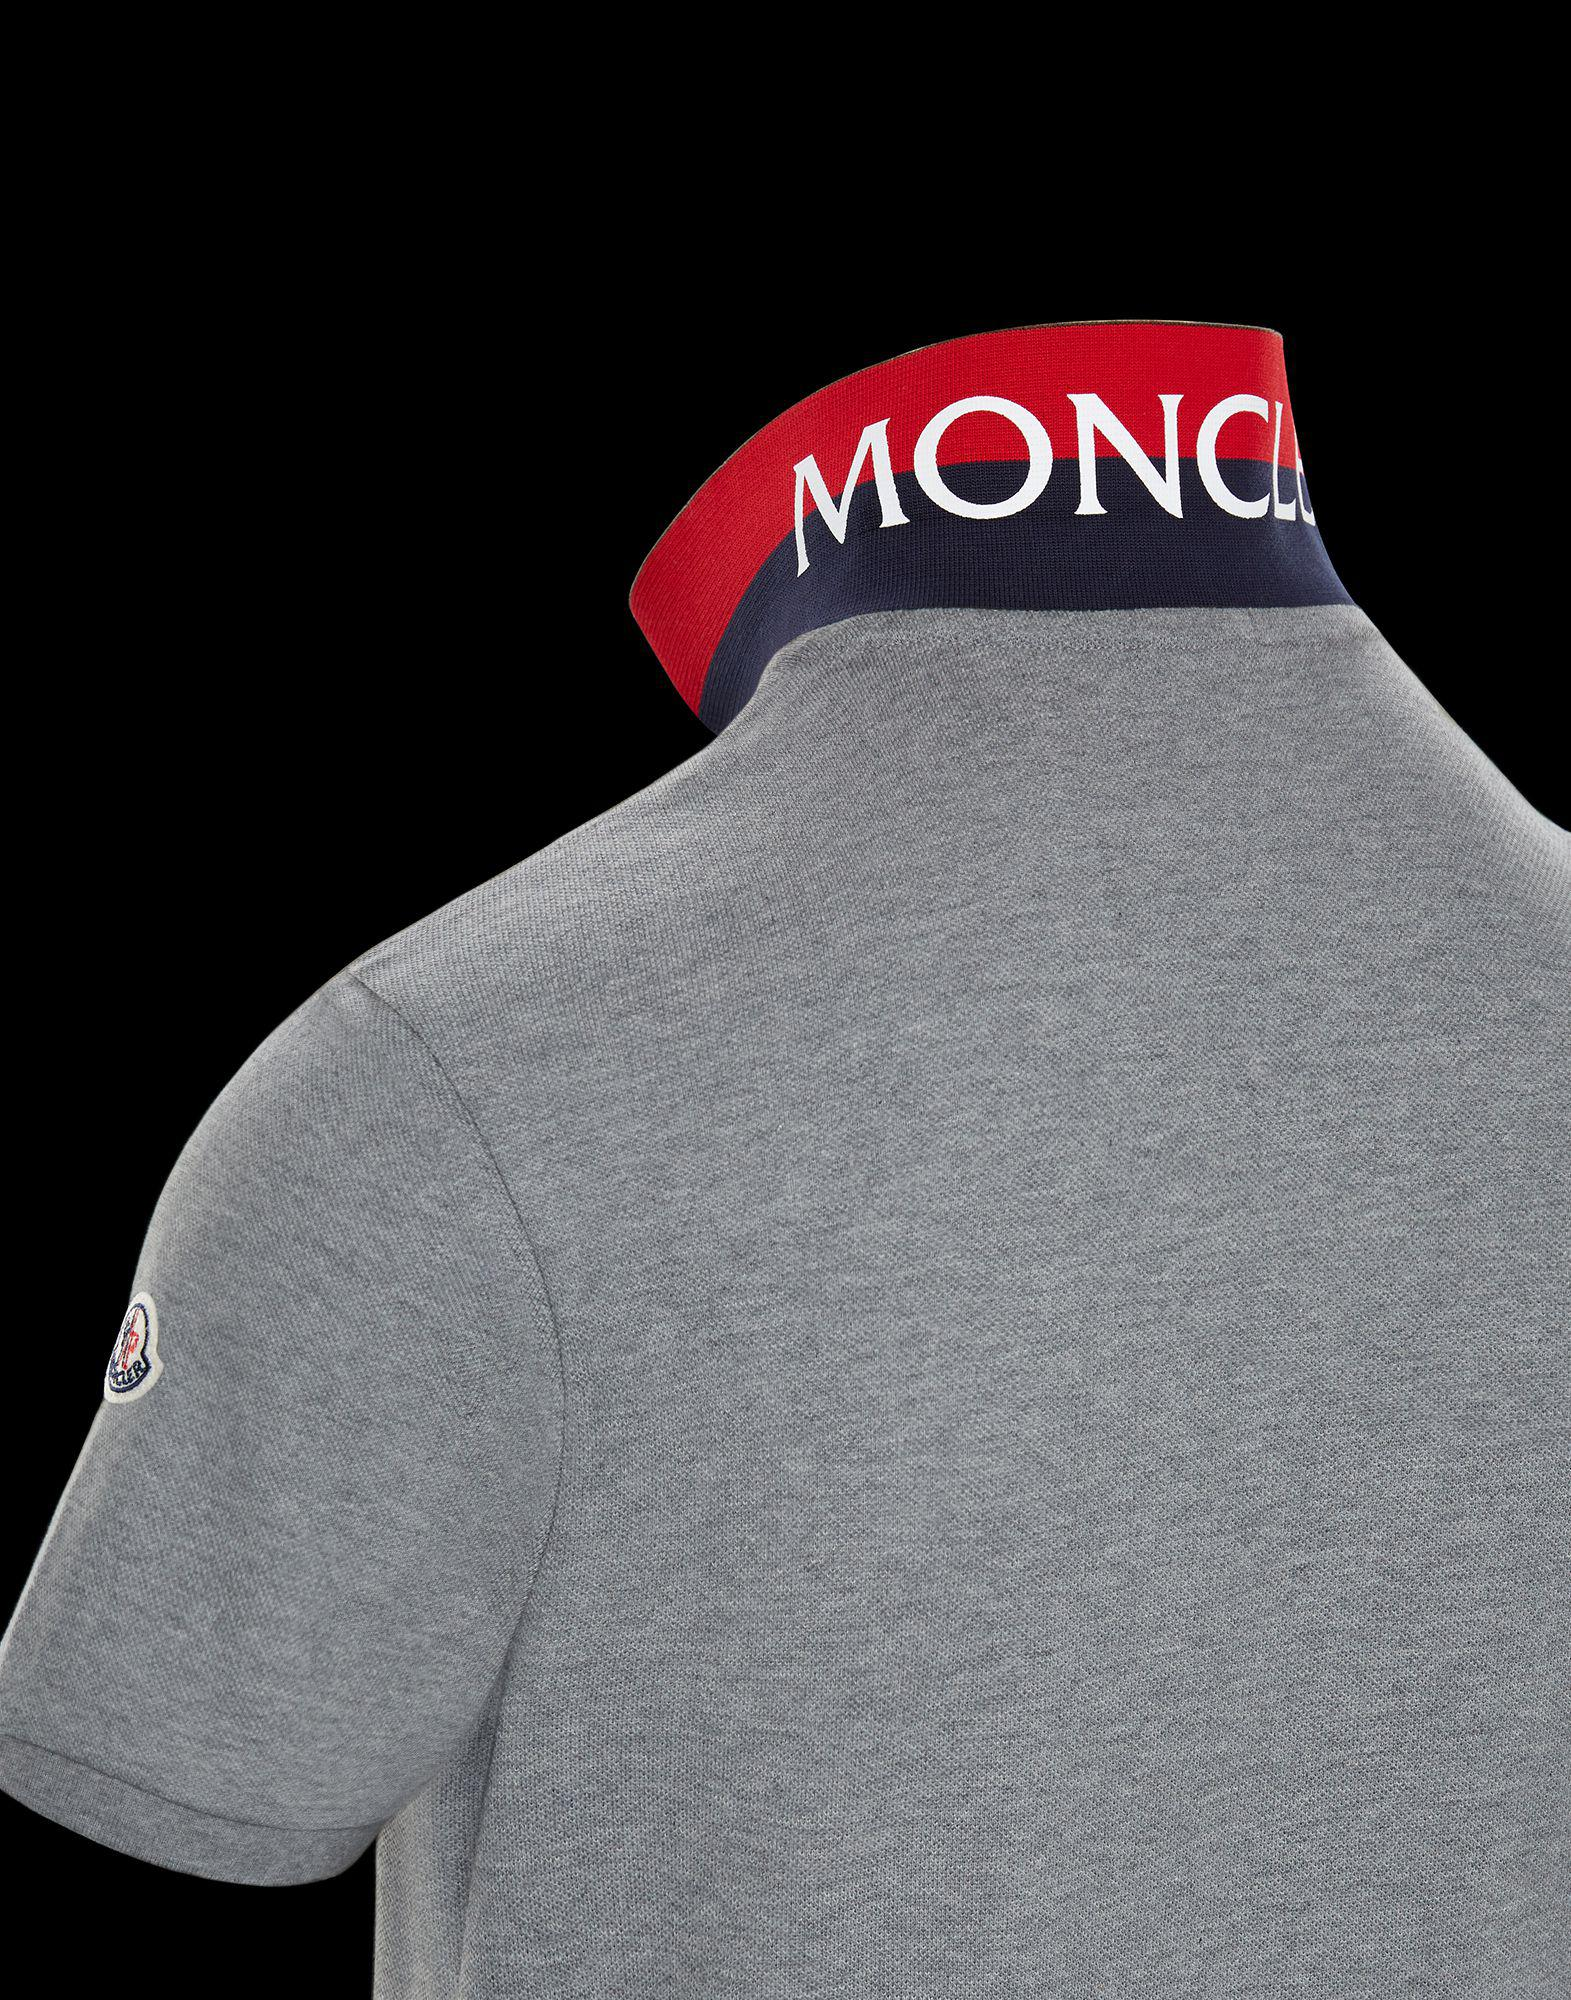 060447d6b464 Moncler Polo Shirt in Gray for Men - Lyst